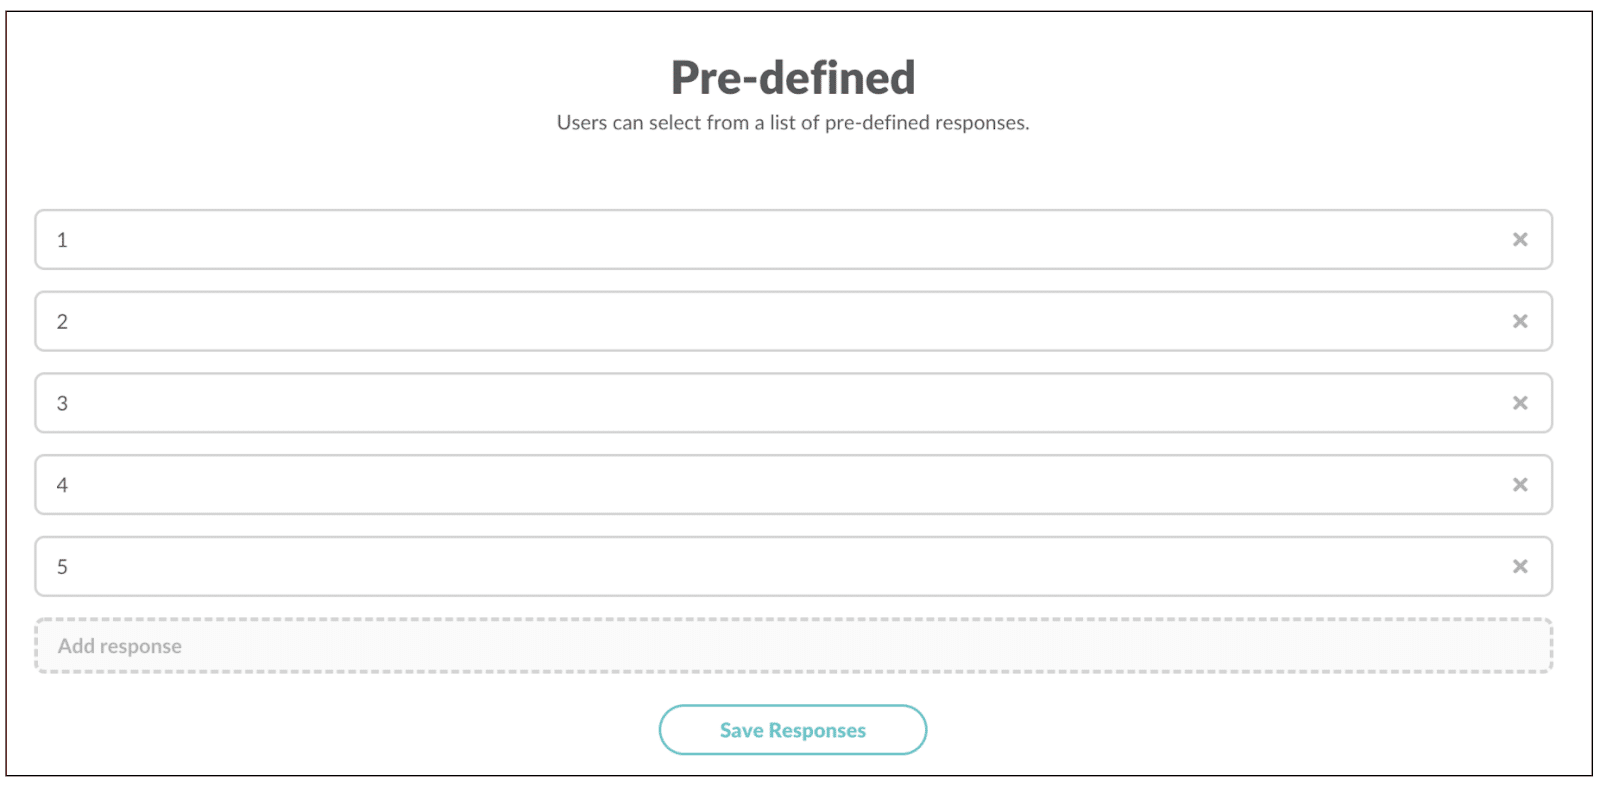 Pre-defined: Users can select from a list of pre-defined responses.